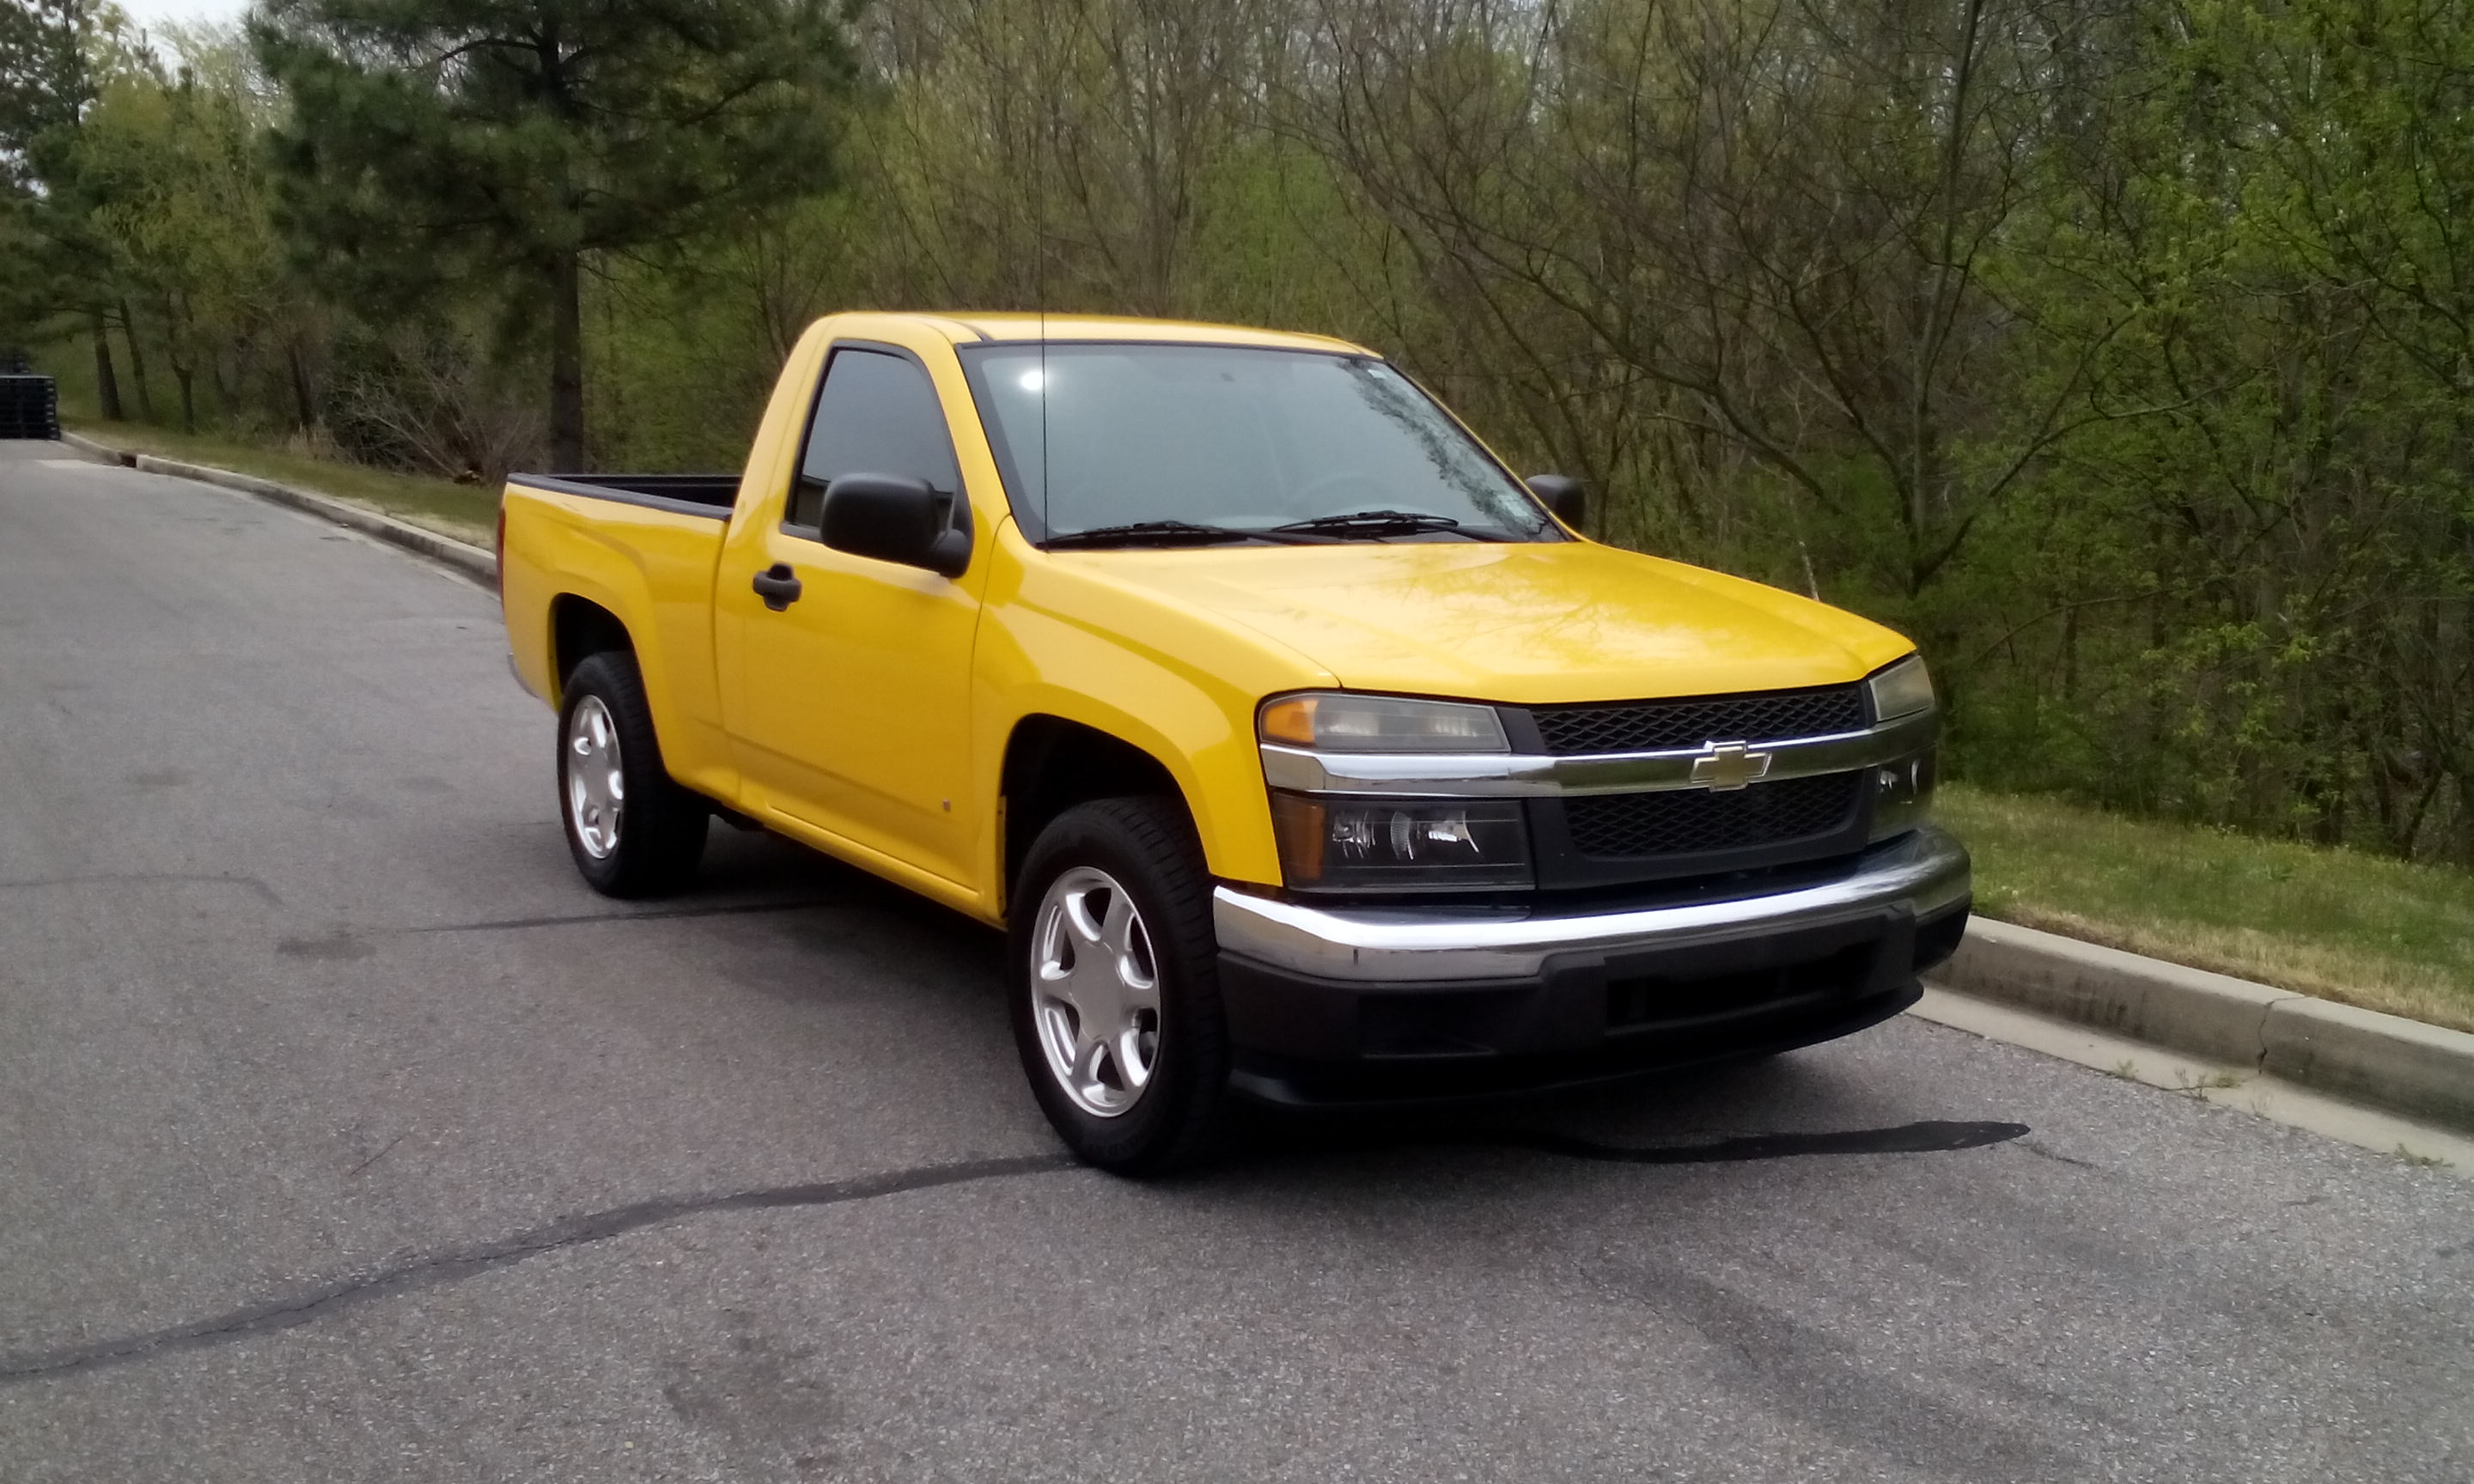 2019 Chevrolet Colorado Regular Cab photo - 4